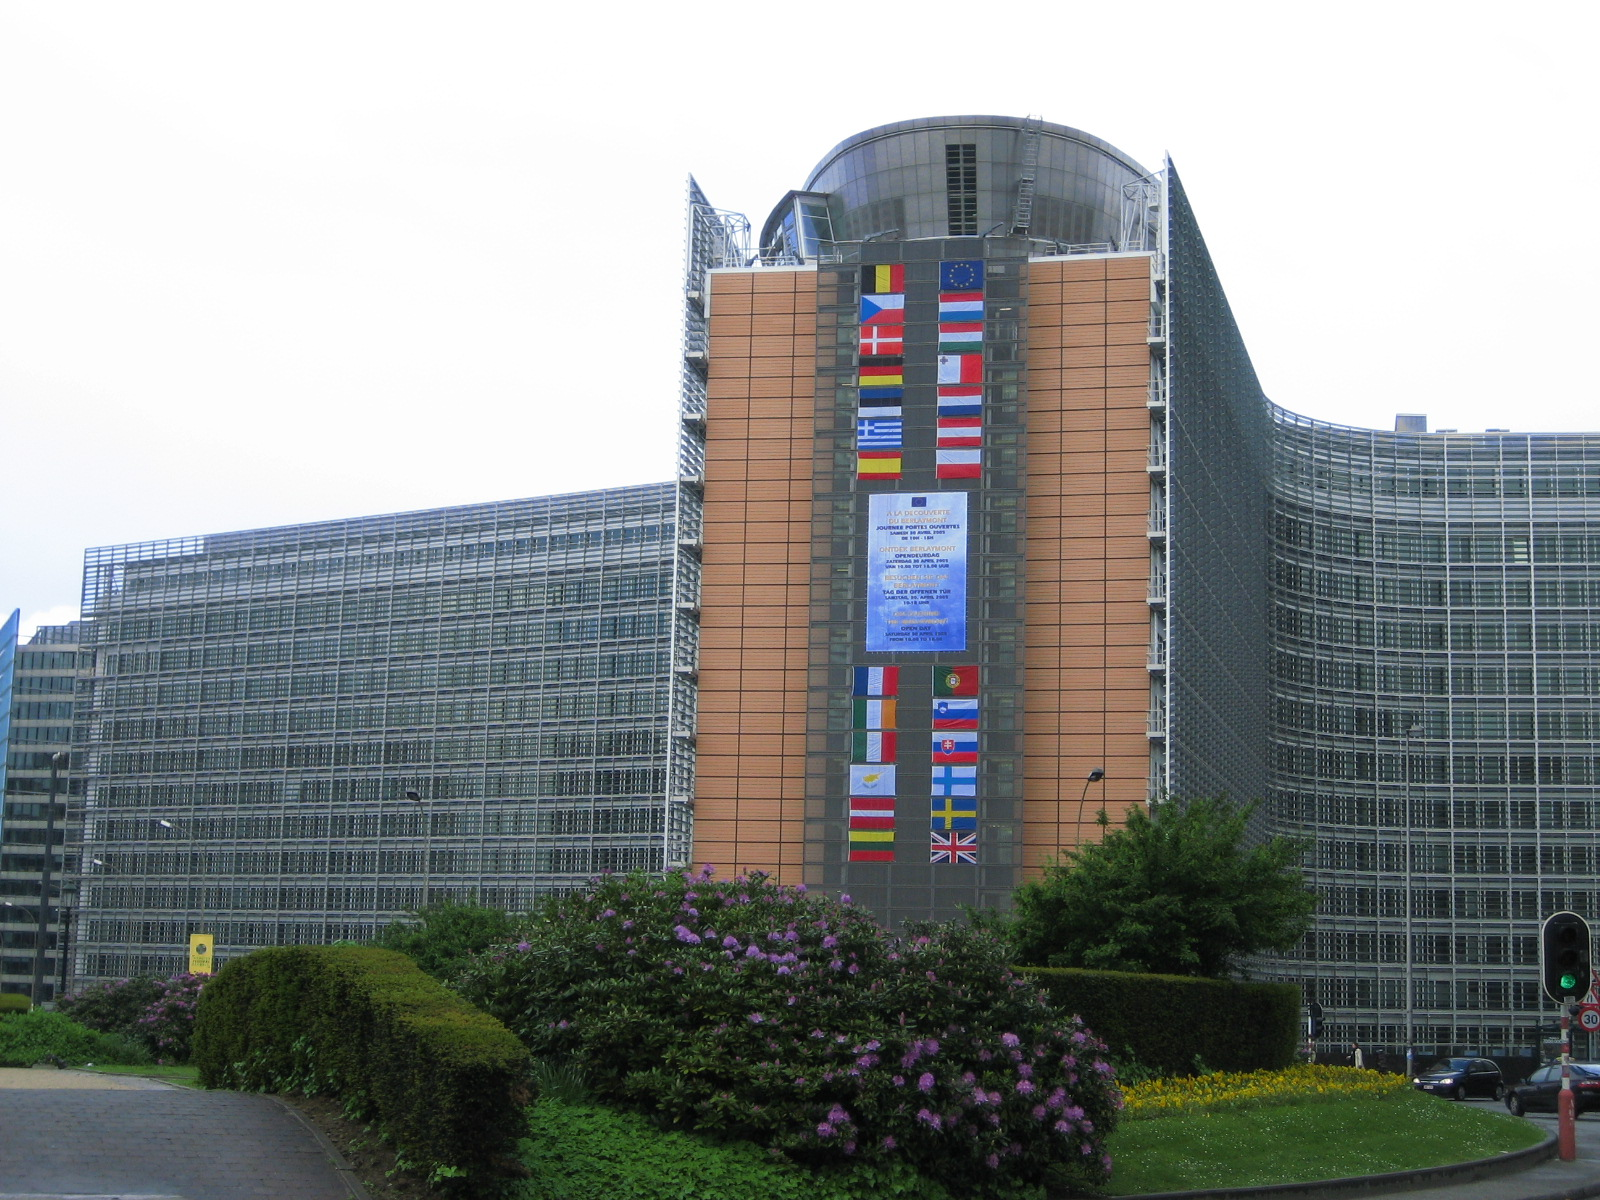 Commissione europea - photo credit: Zinneke